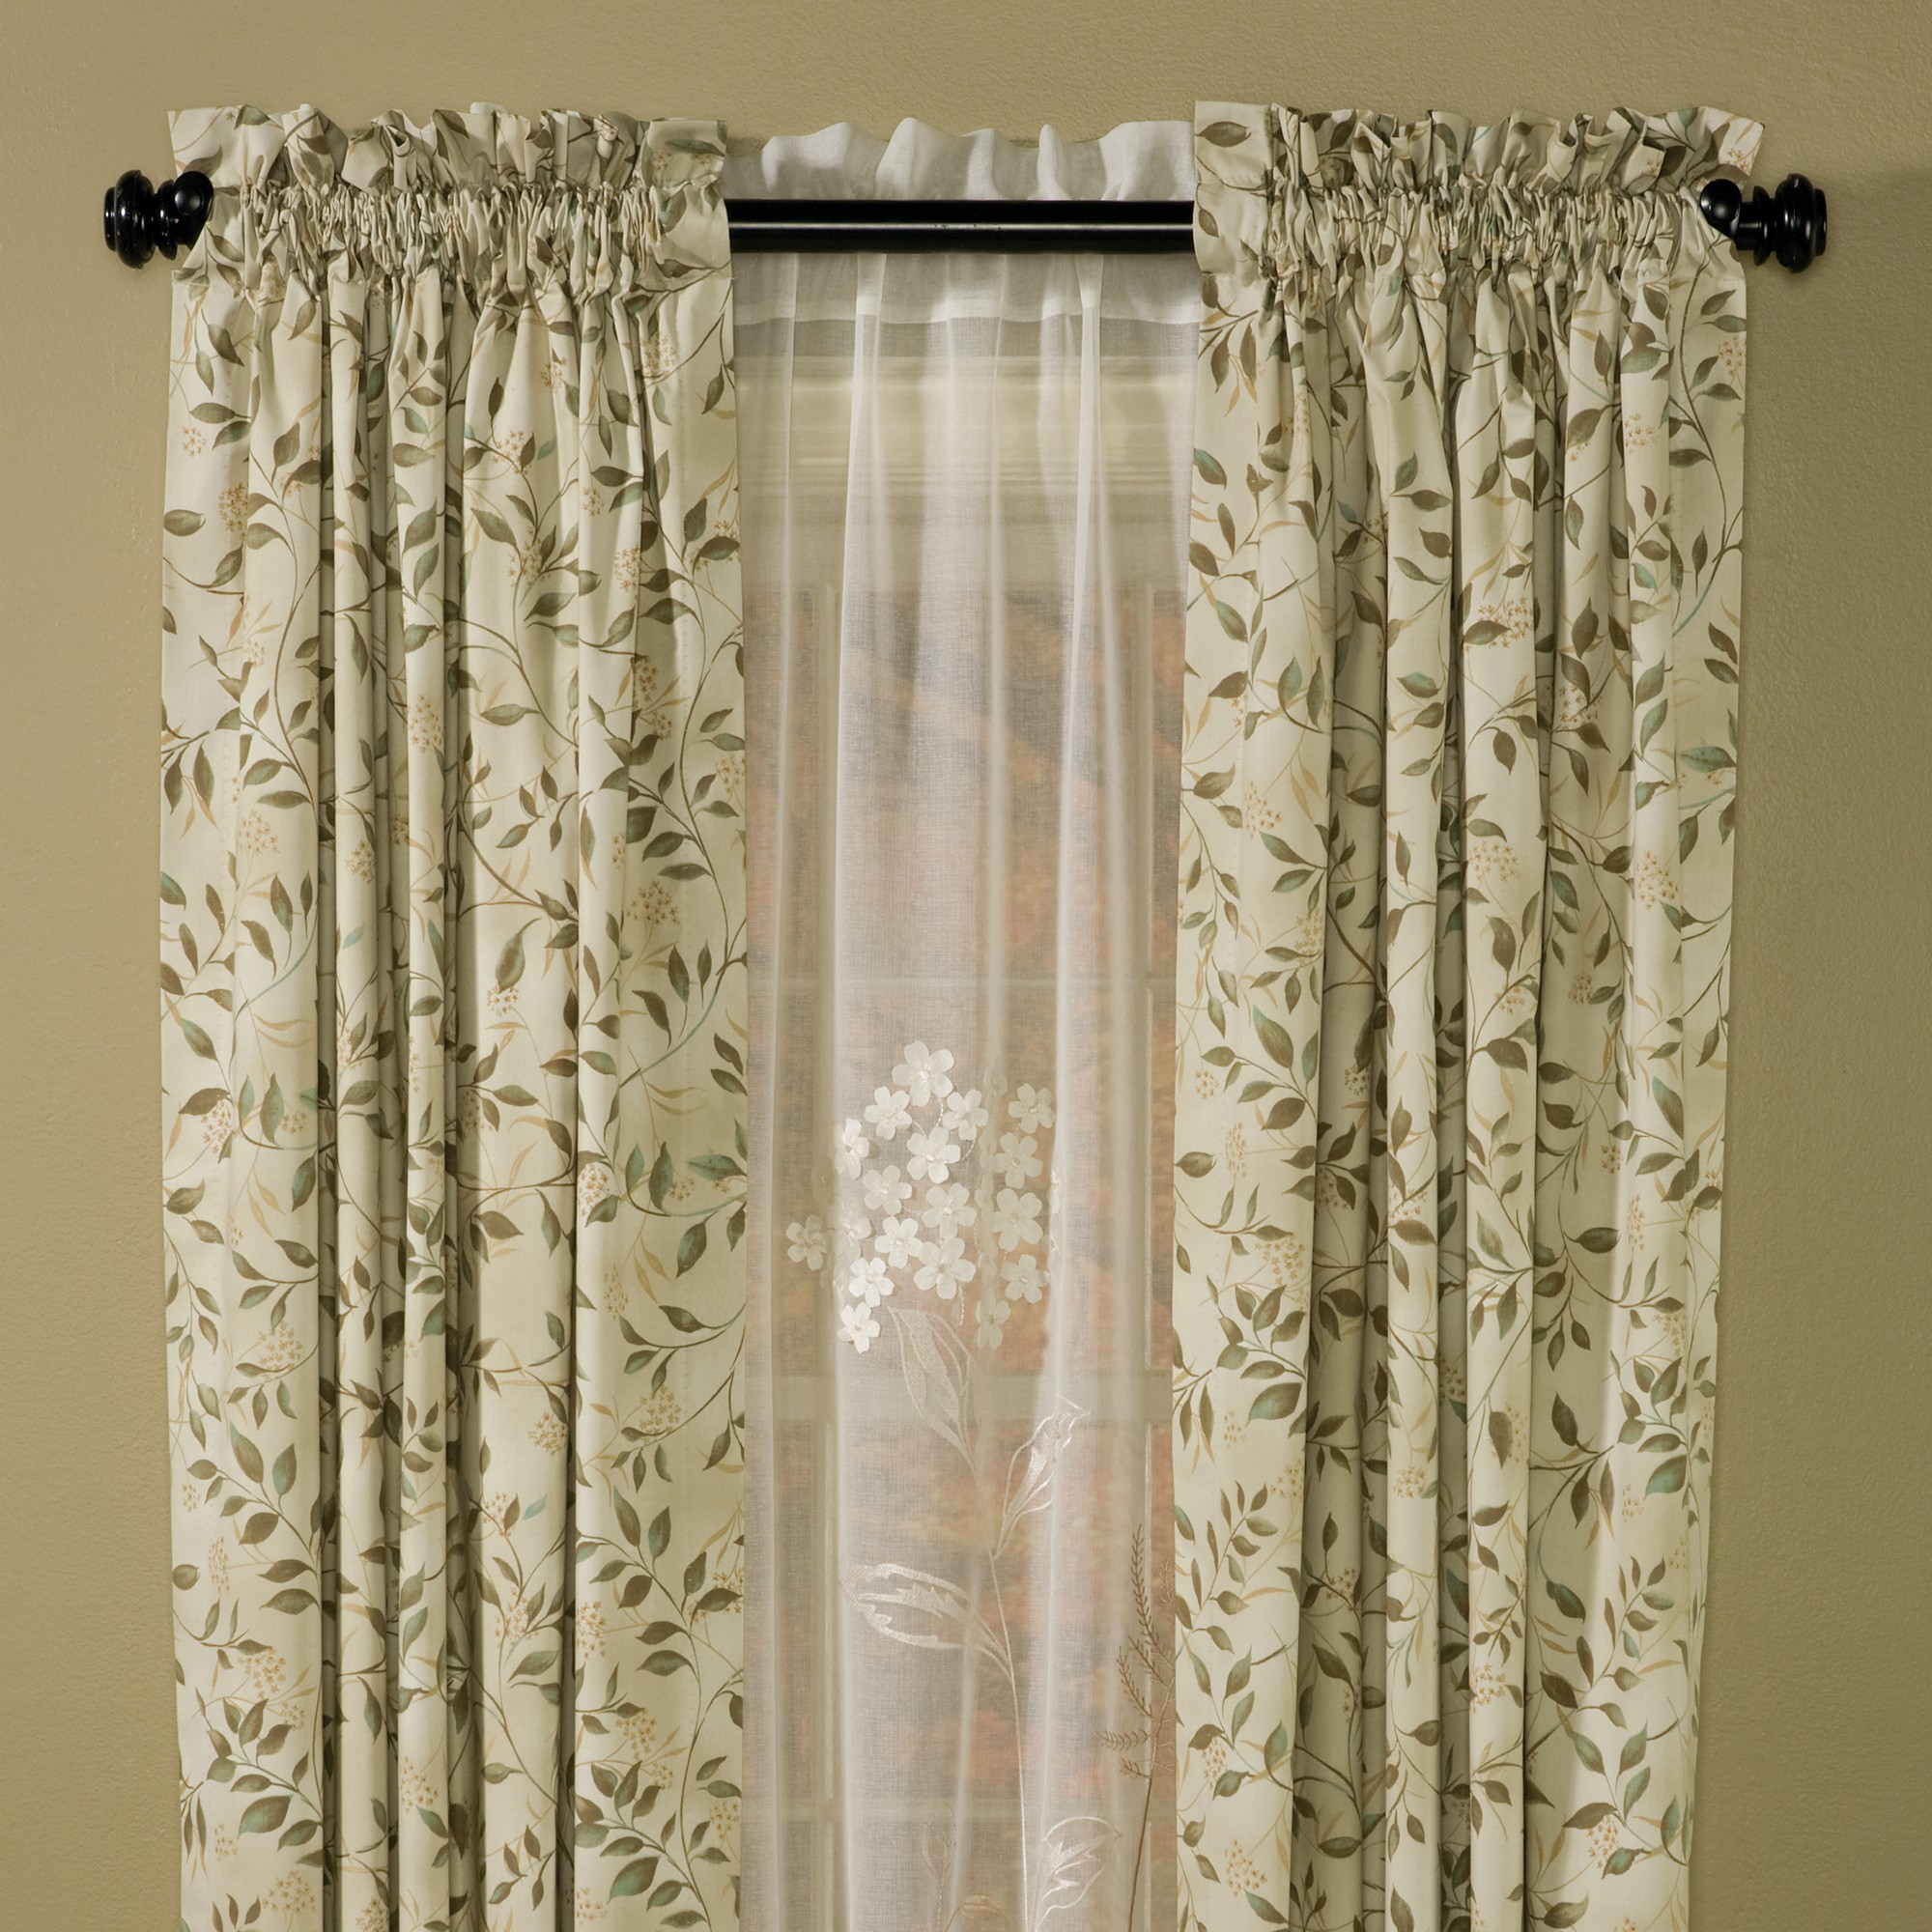 Others 6 Superb Insulating Curtains Insulated Vine Curtain Panels